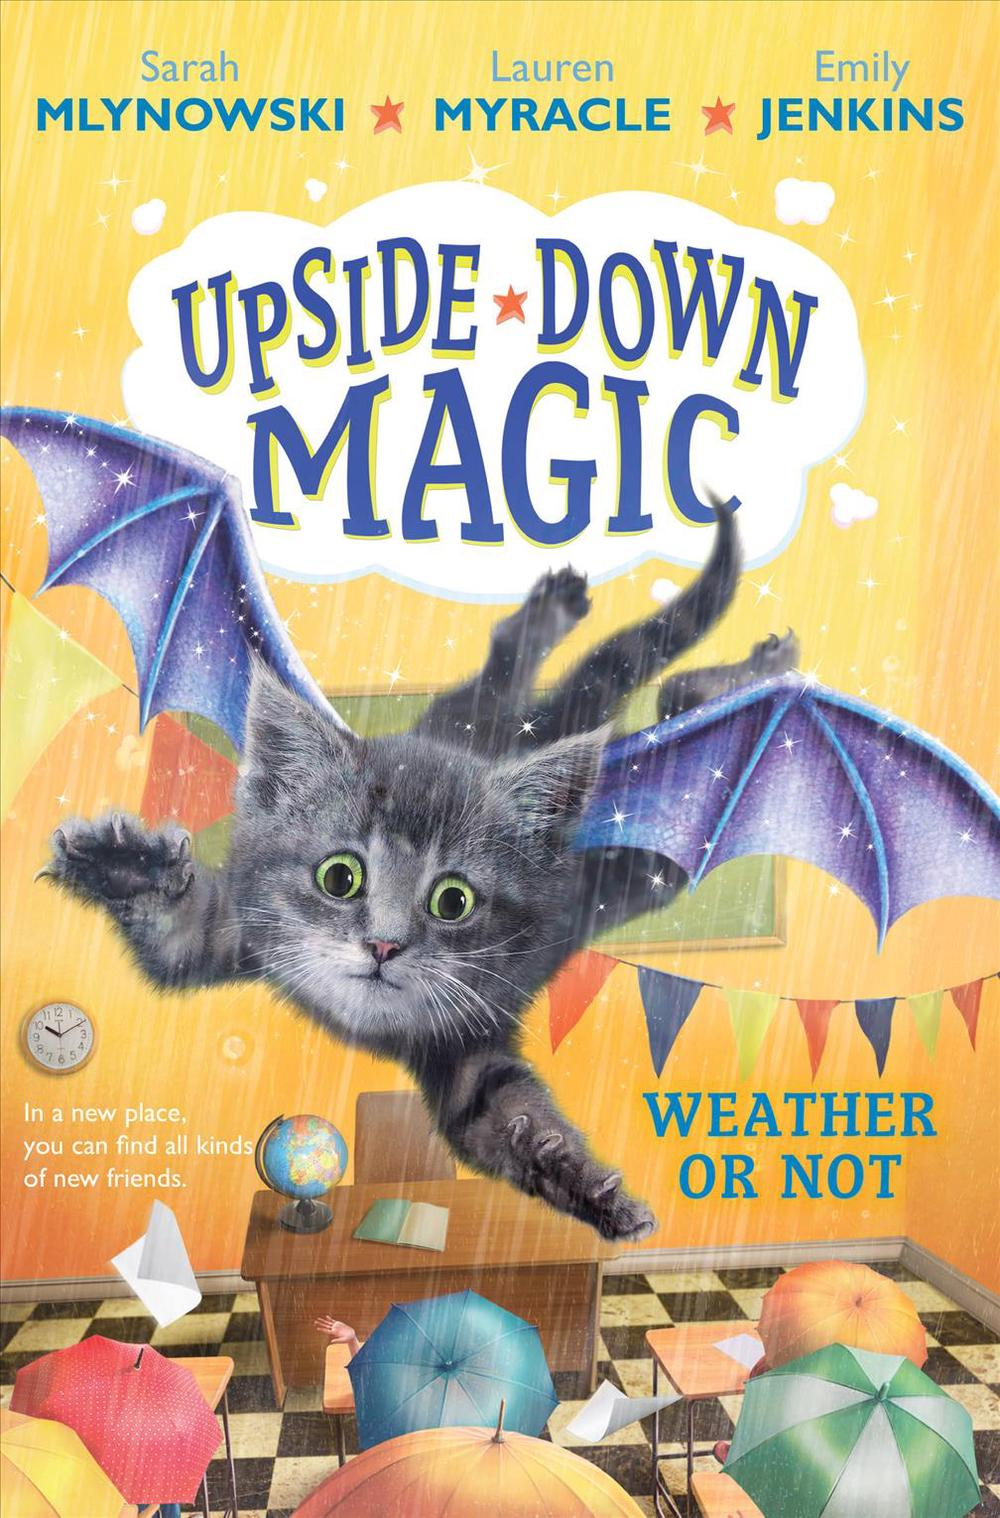 Weather or Not (Upside-Down Magic #5) by Sarah Mlynowski, ISBN: 9781338221473